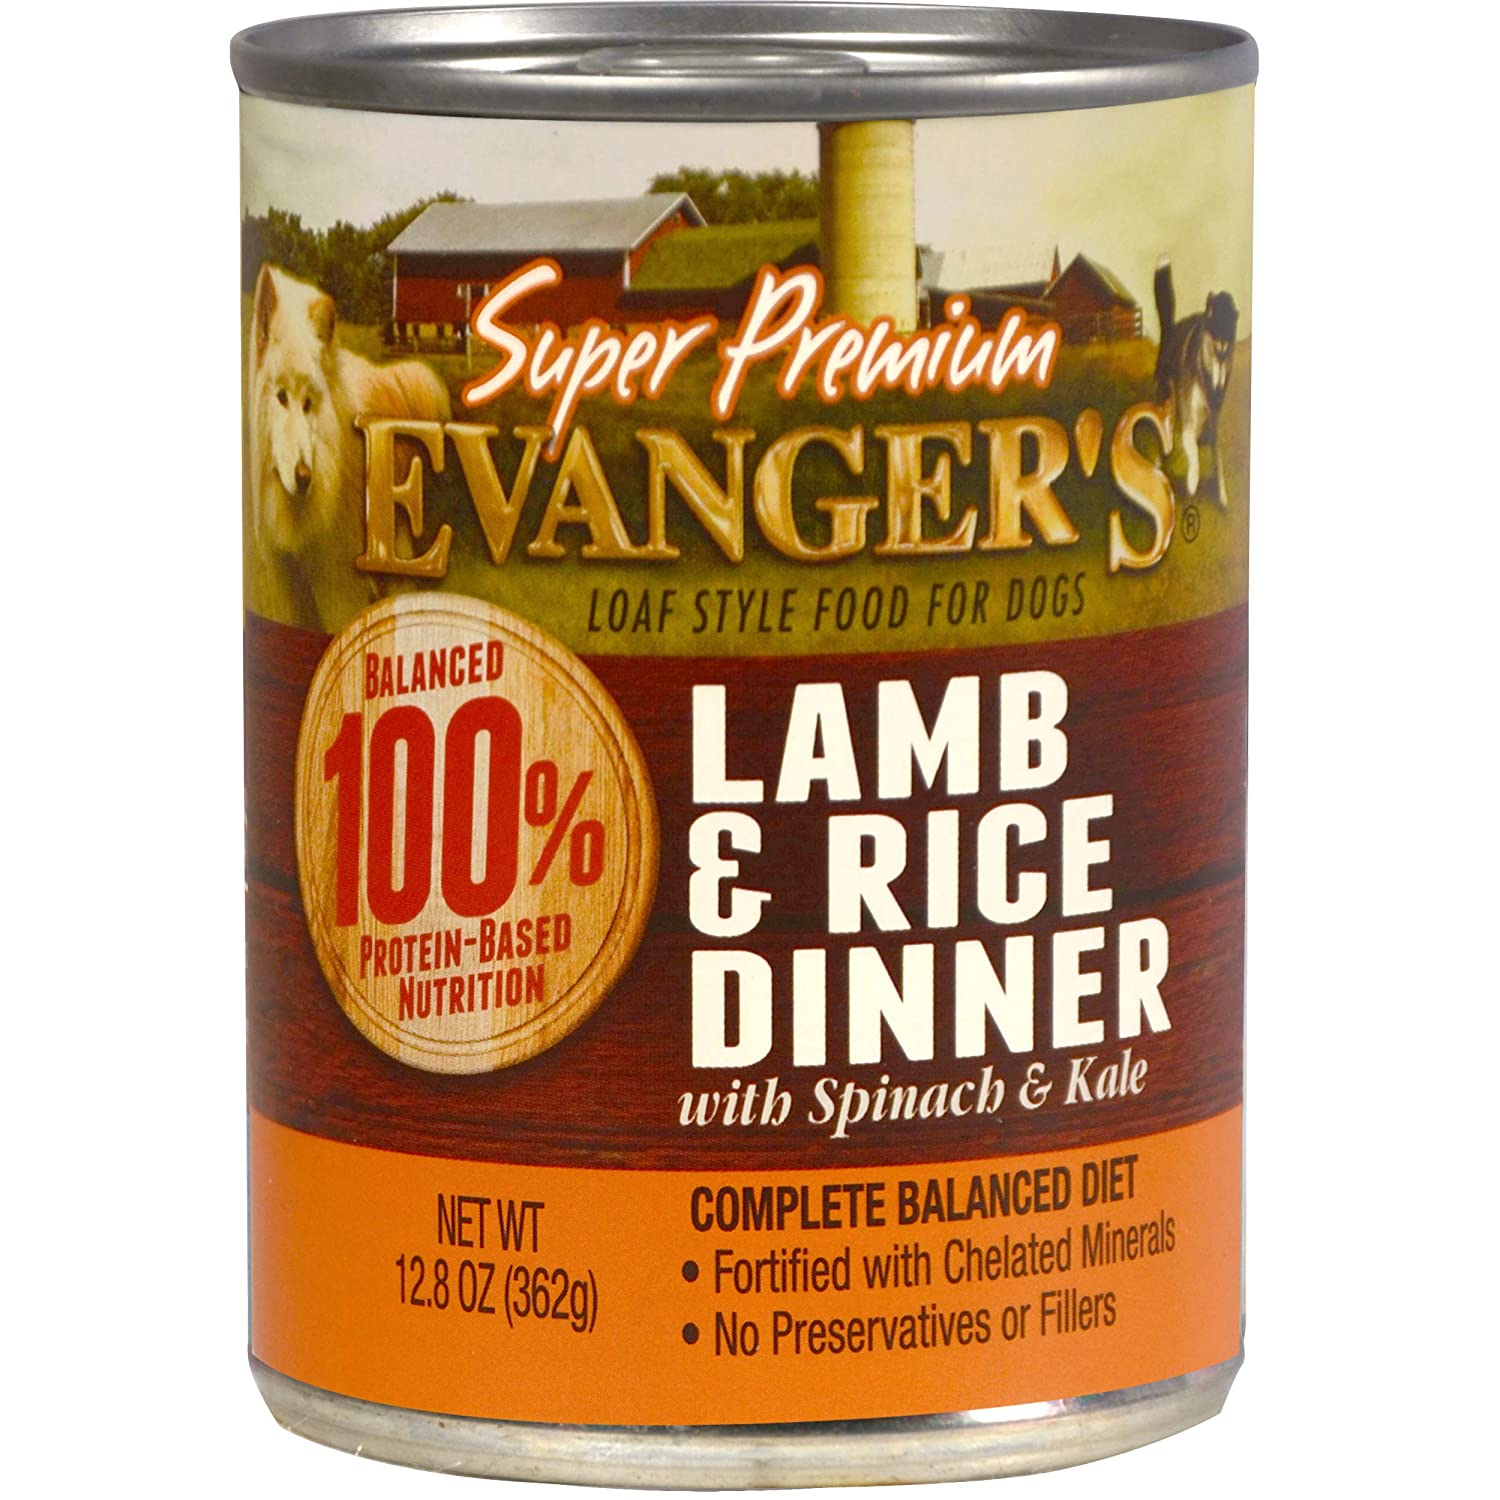 Evanger S Super Premium For Dogs Lamb And Rice Dinner, 12-Pack